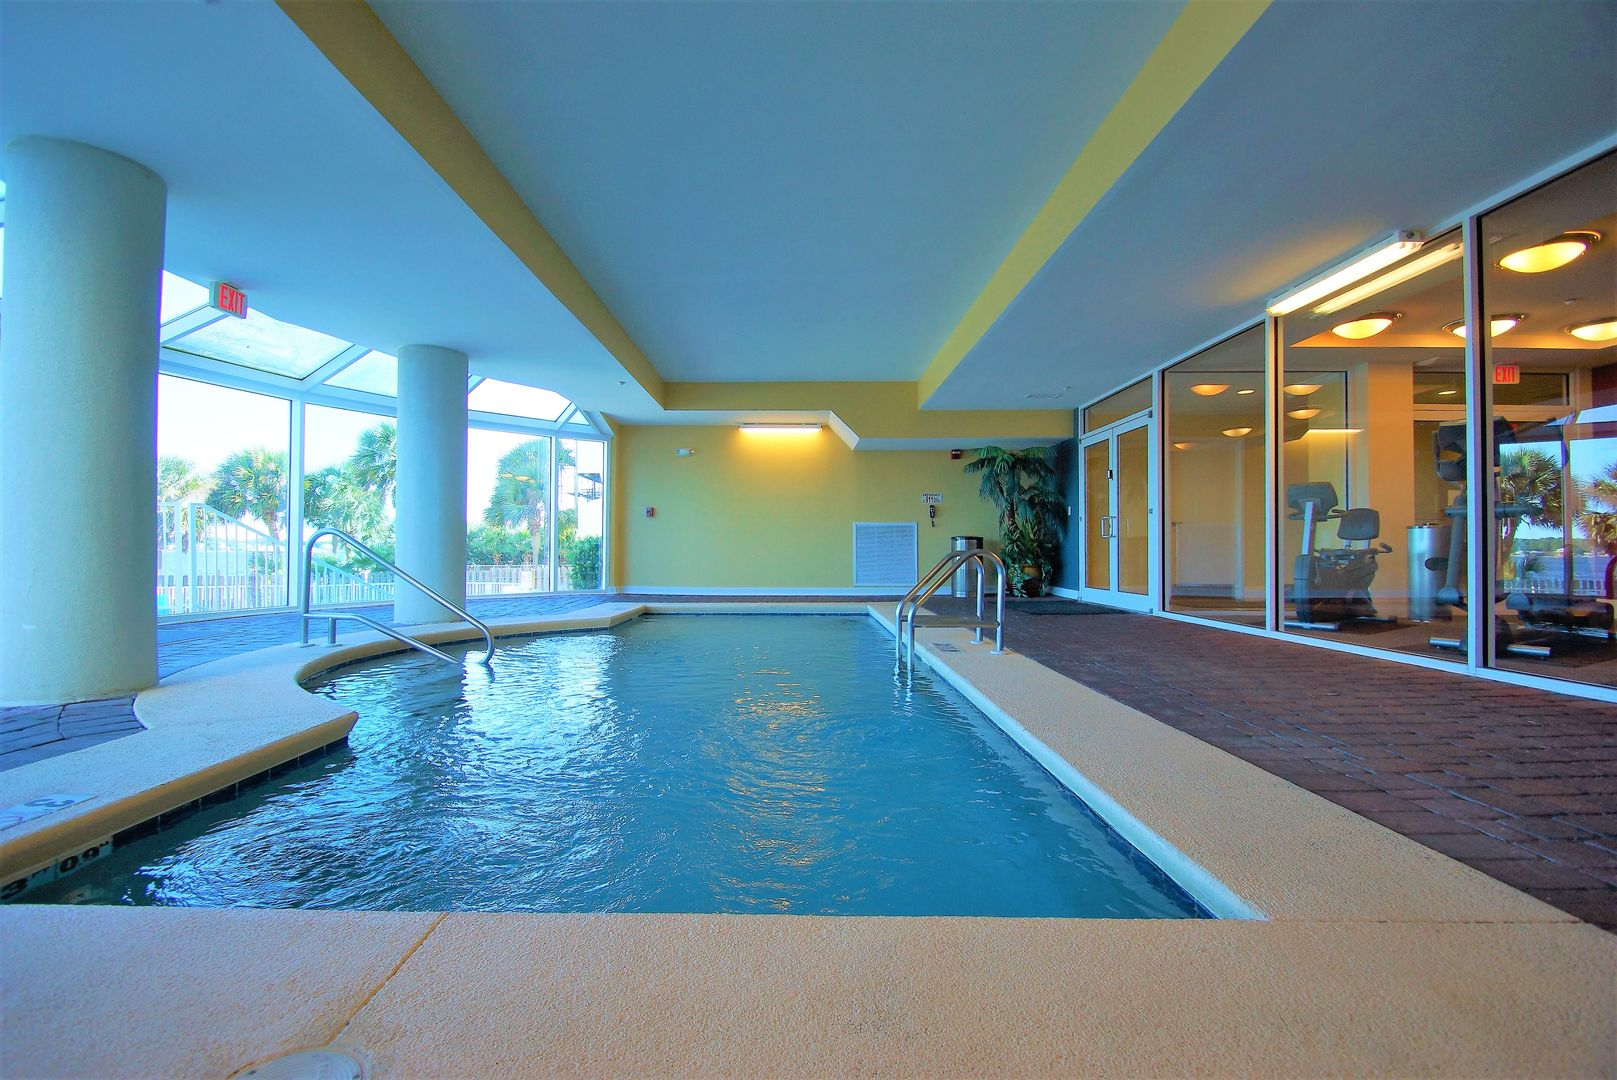 Picture of the Indoor Pool Next to the Fitness Center.